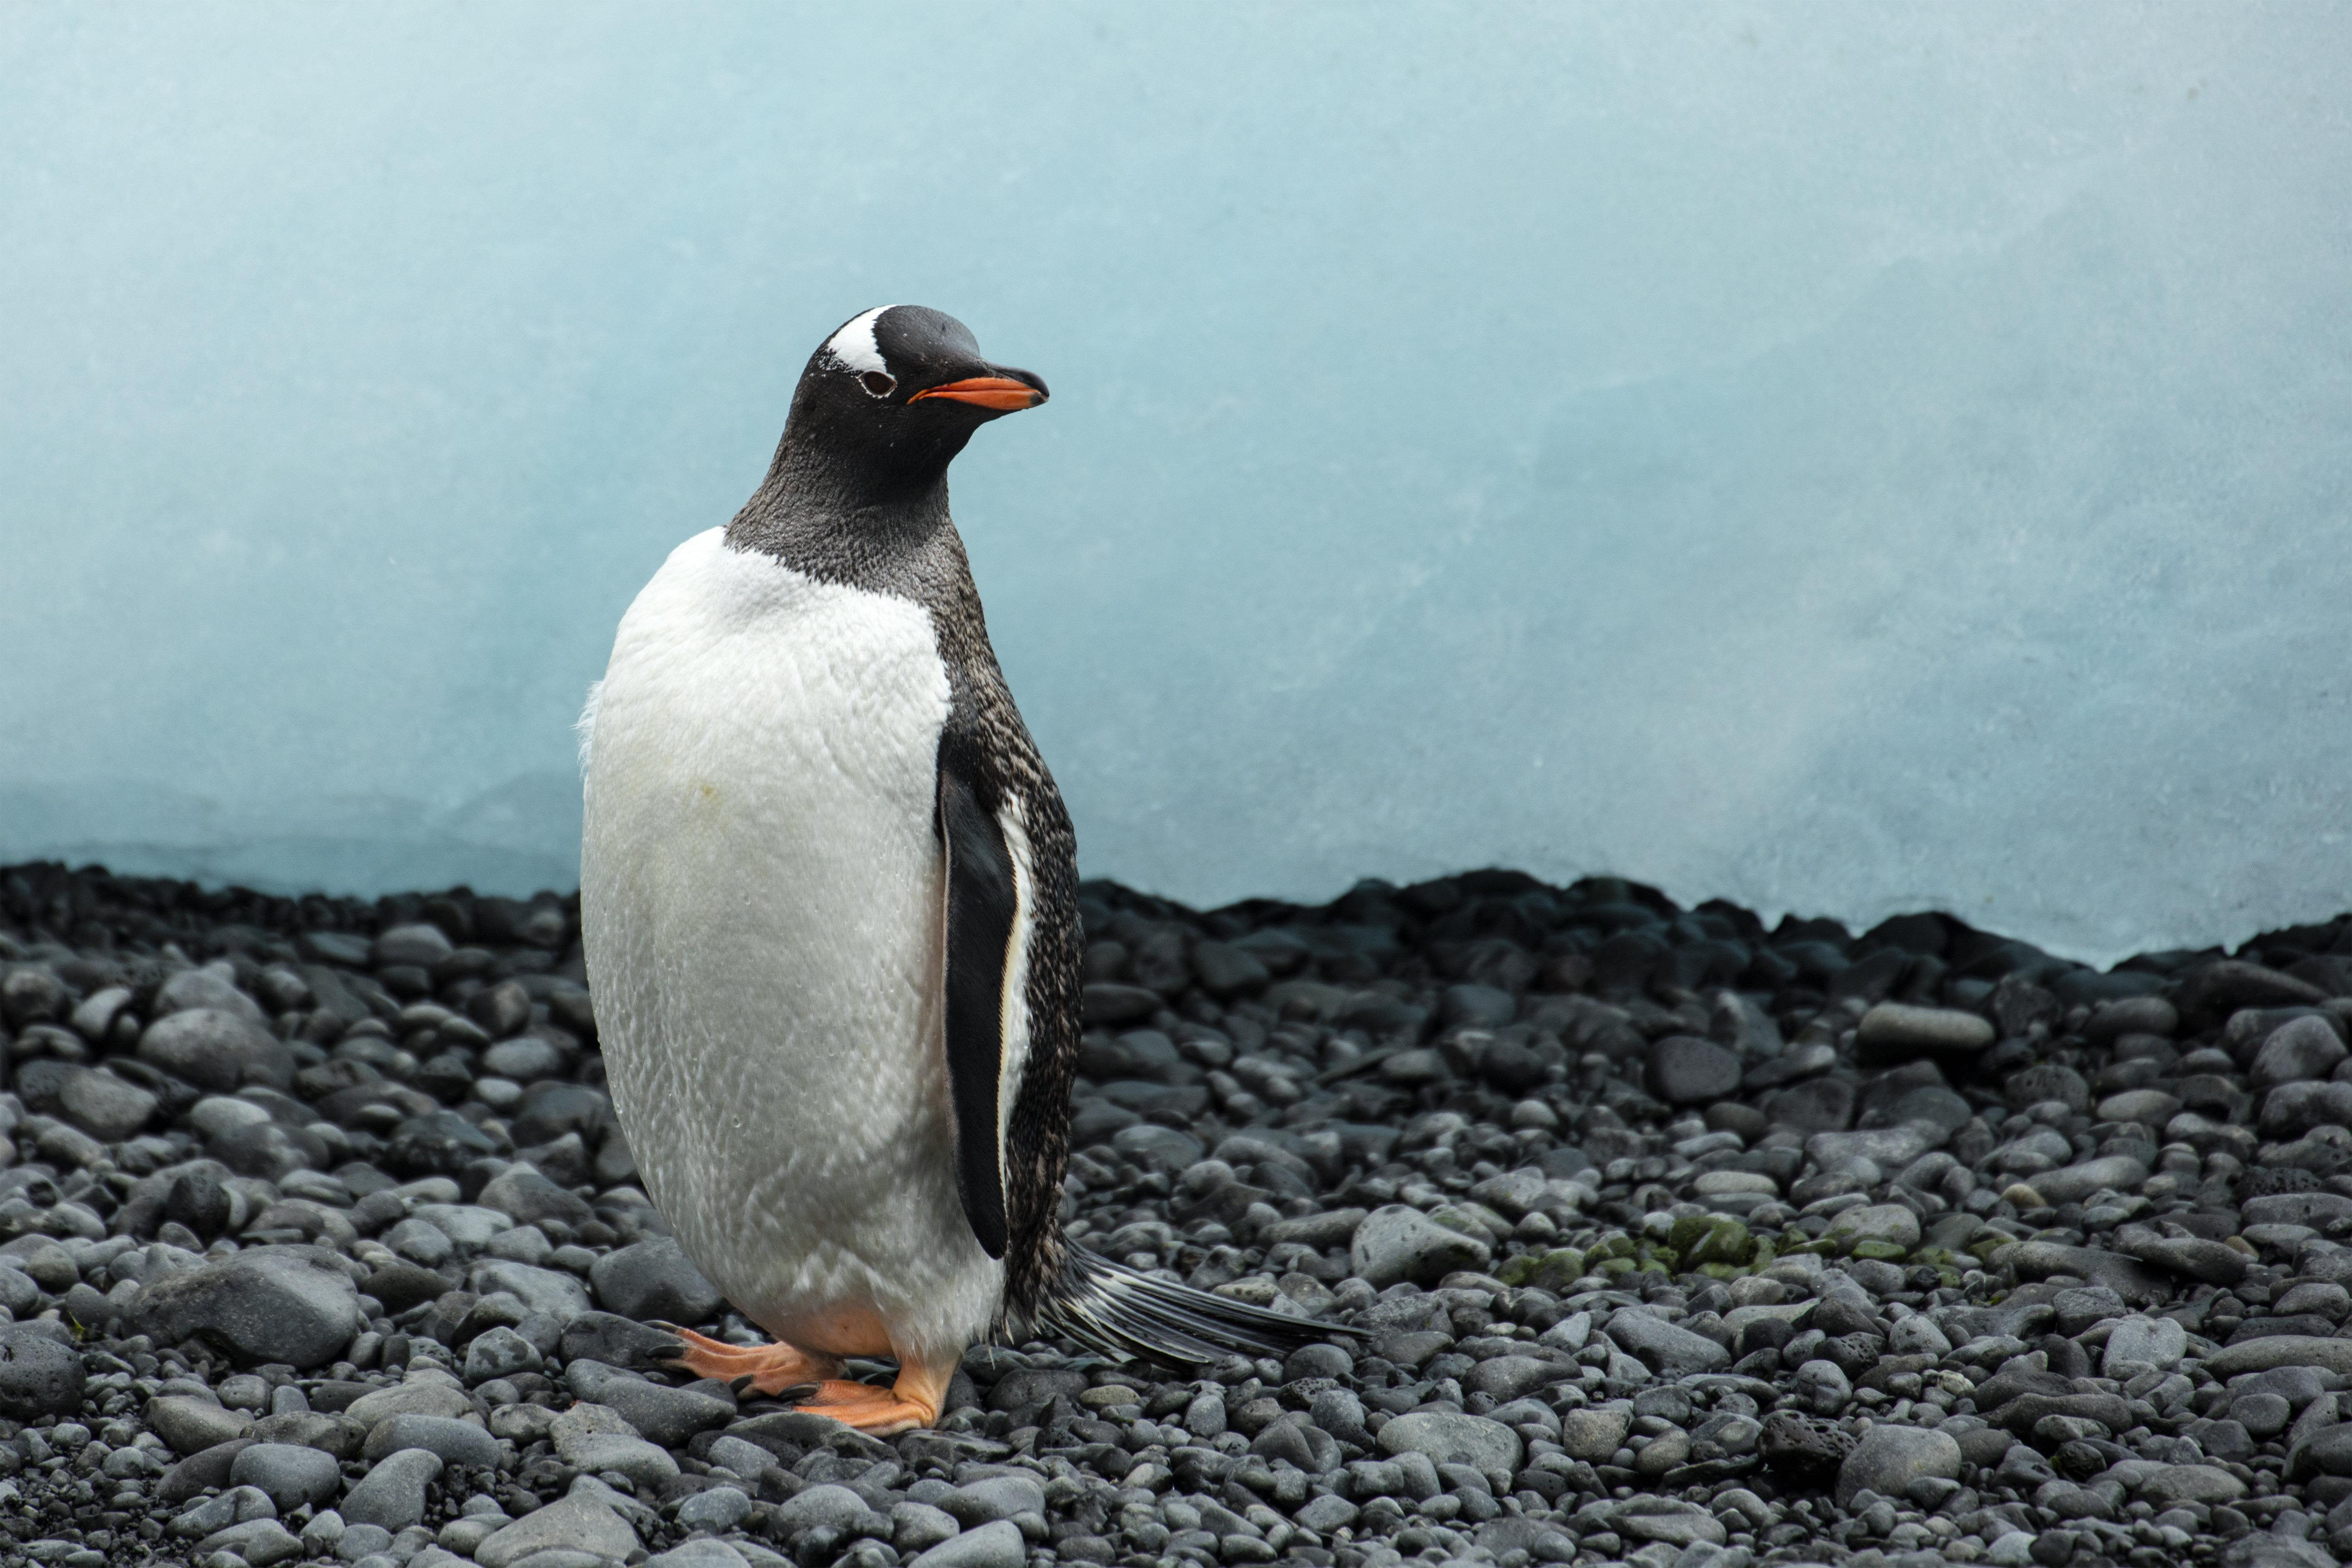 https://upload.wikimedia.org/wikipedia/commons/0/00/Brown_Bluff-2016-Tabarin_Peninsula%E2%80%93Gentoo_penguin_(Pygoscelis_papua)_03.jpg